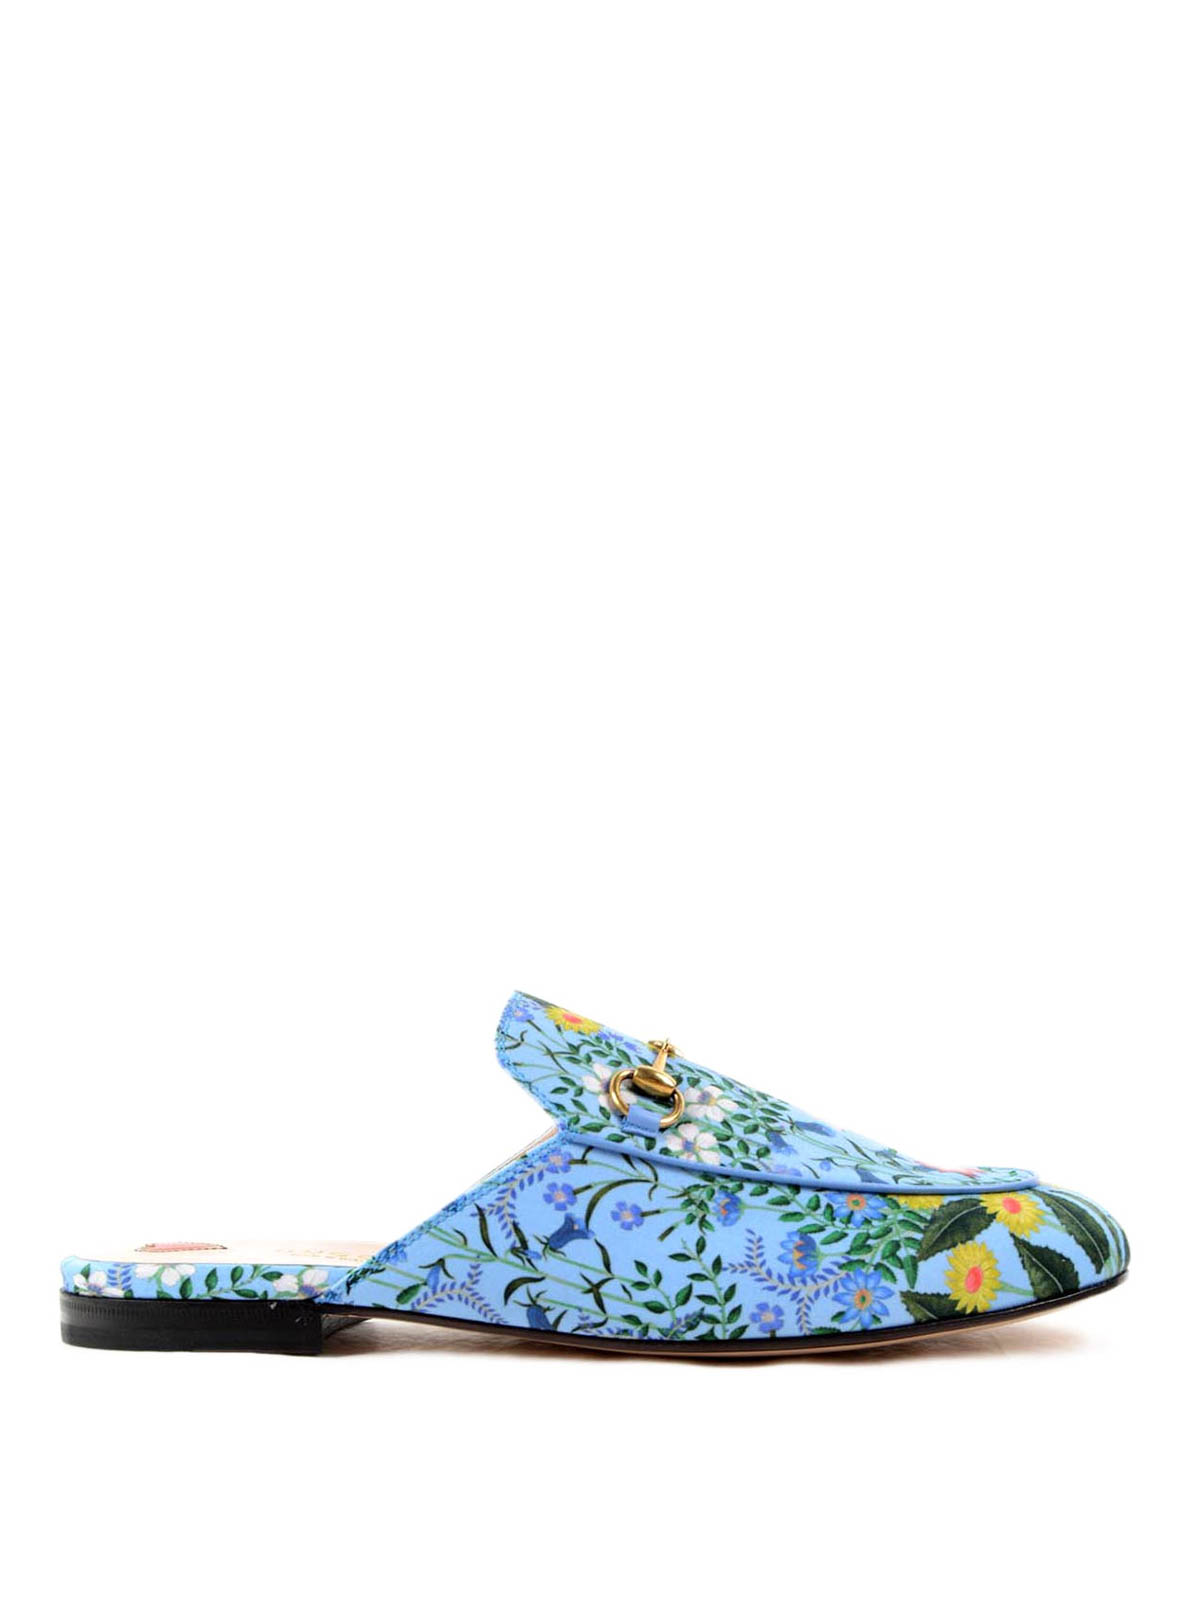 4a9f38b9258 Gucci - Leather New Flora slippers - Loafers   Slippers ...